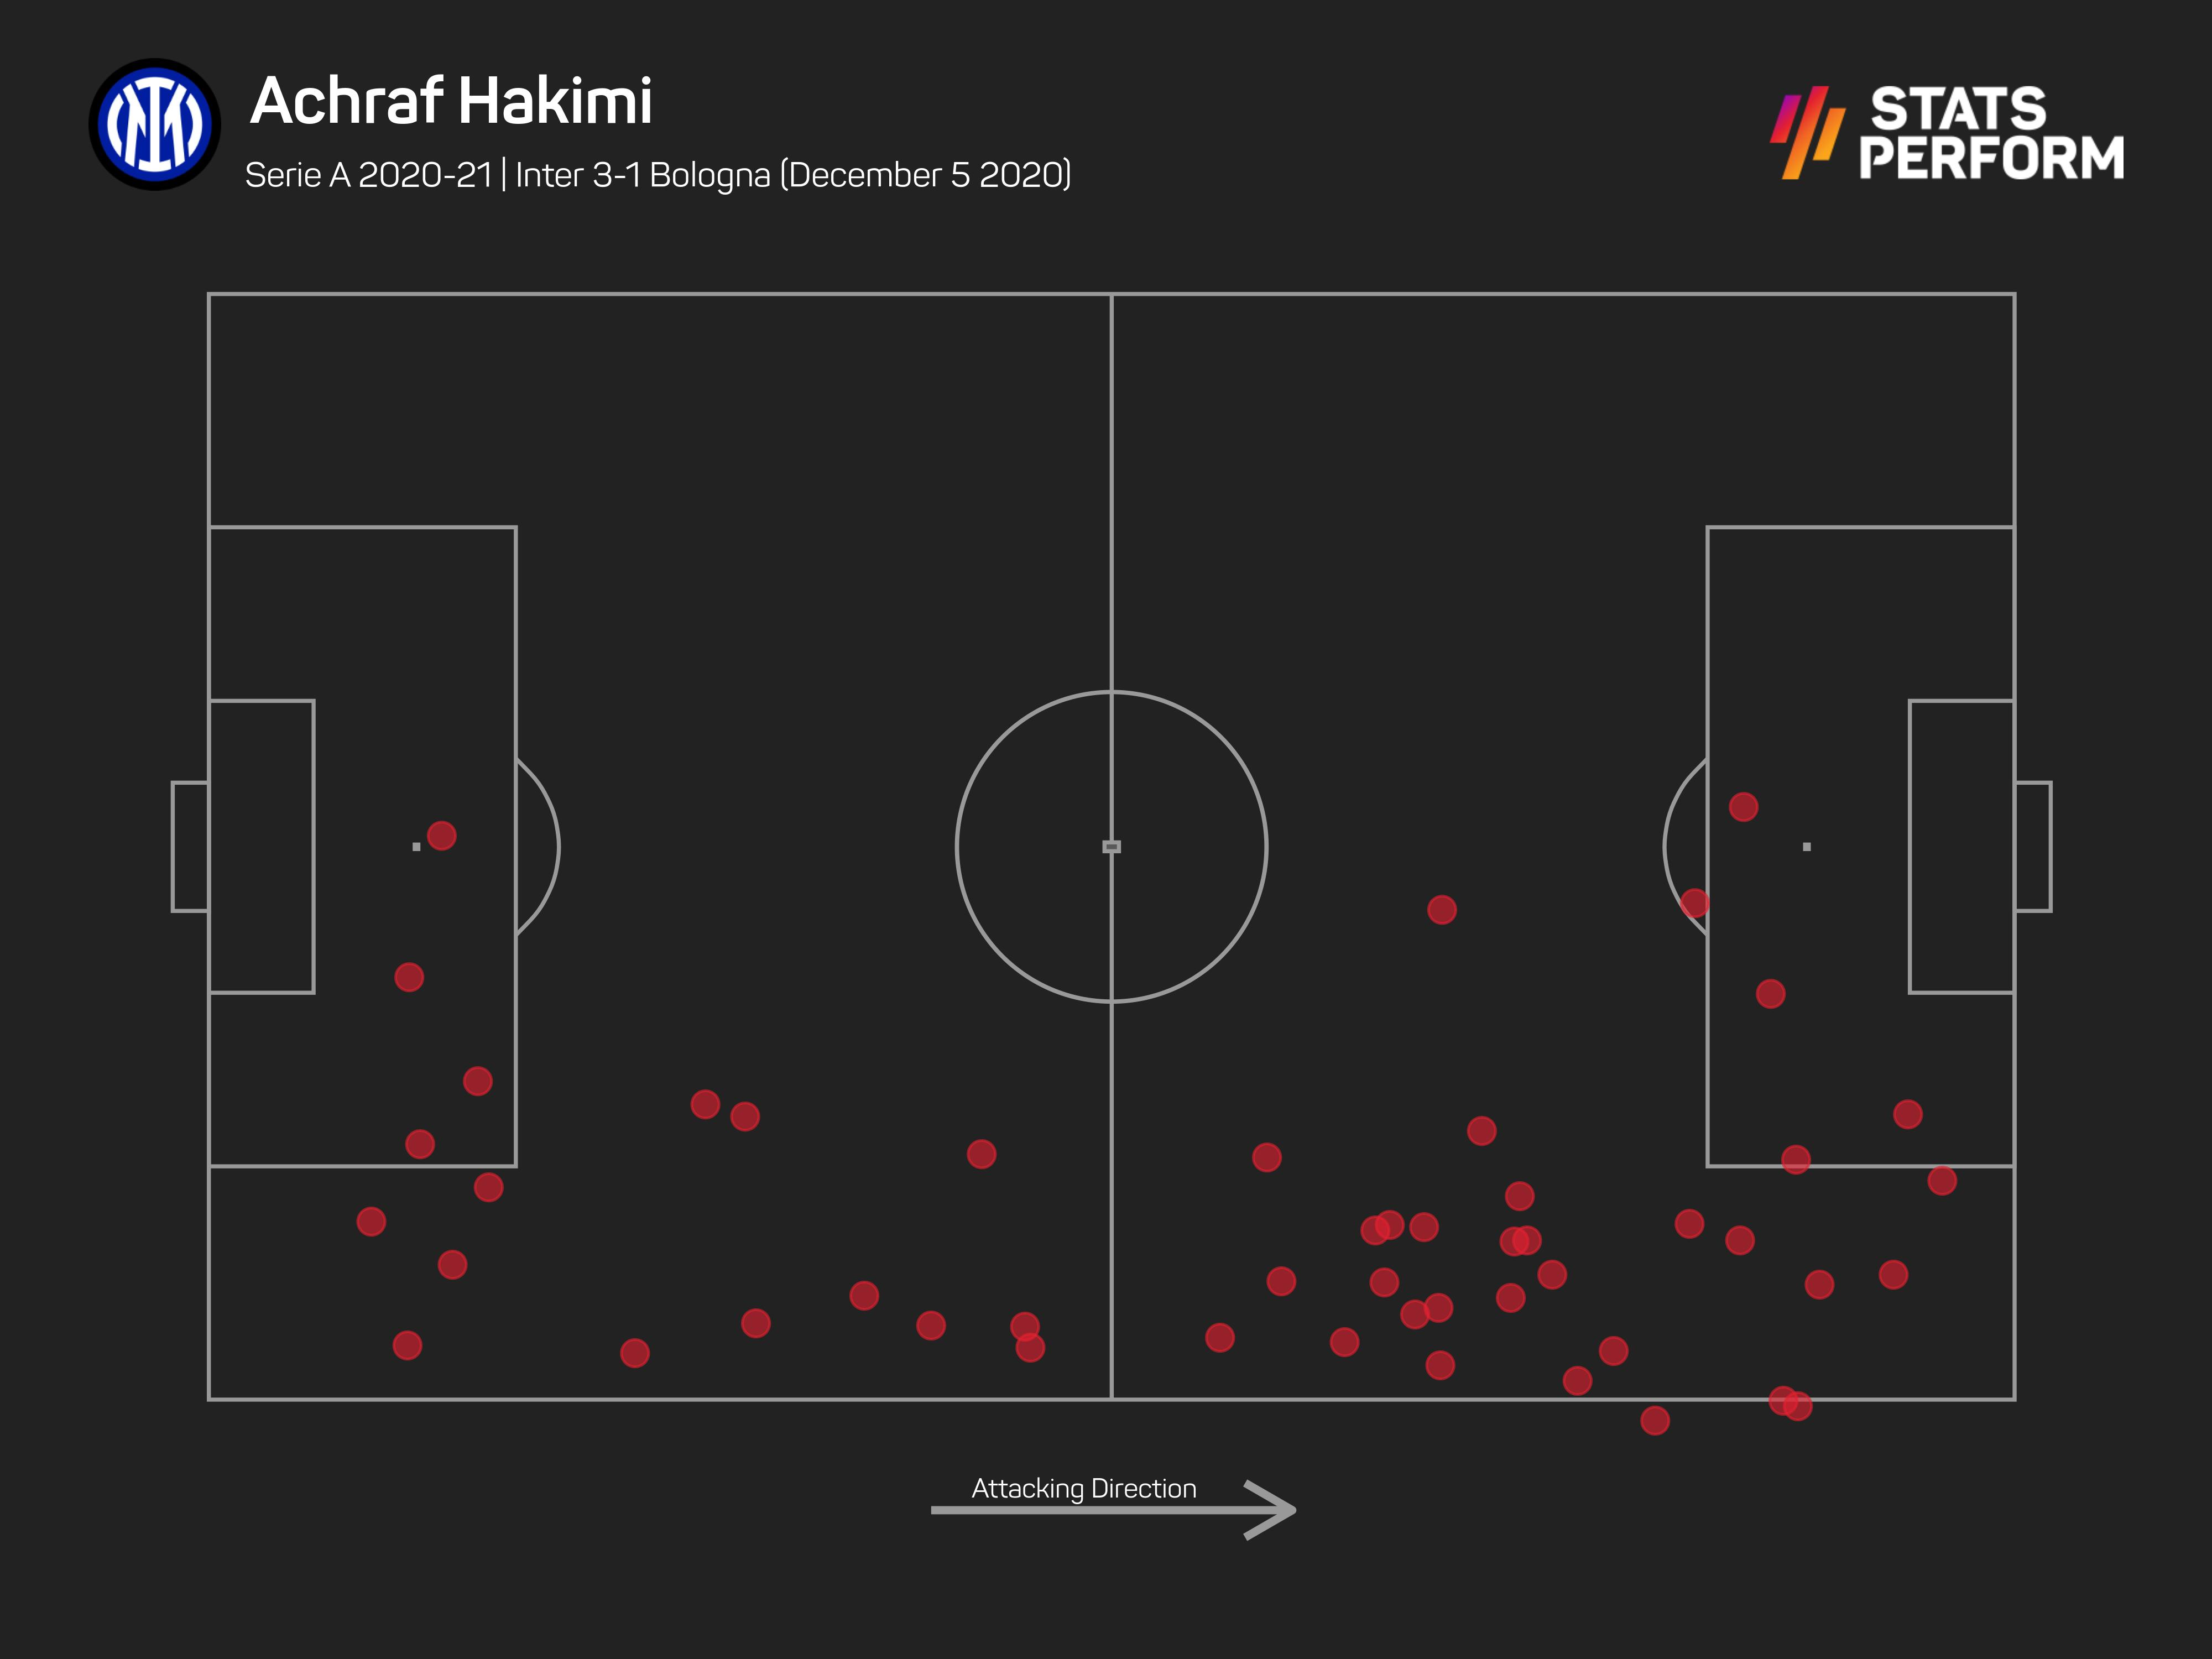 Achraf Hakimi's touchmap in his two-goal display against Bologna